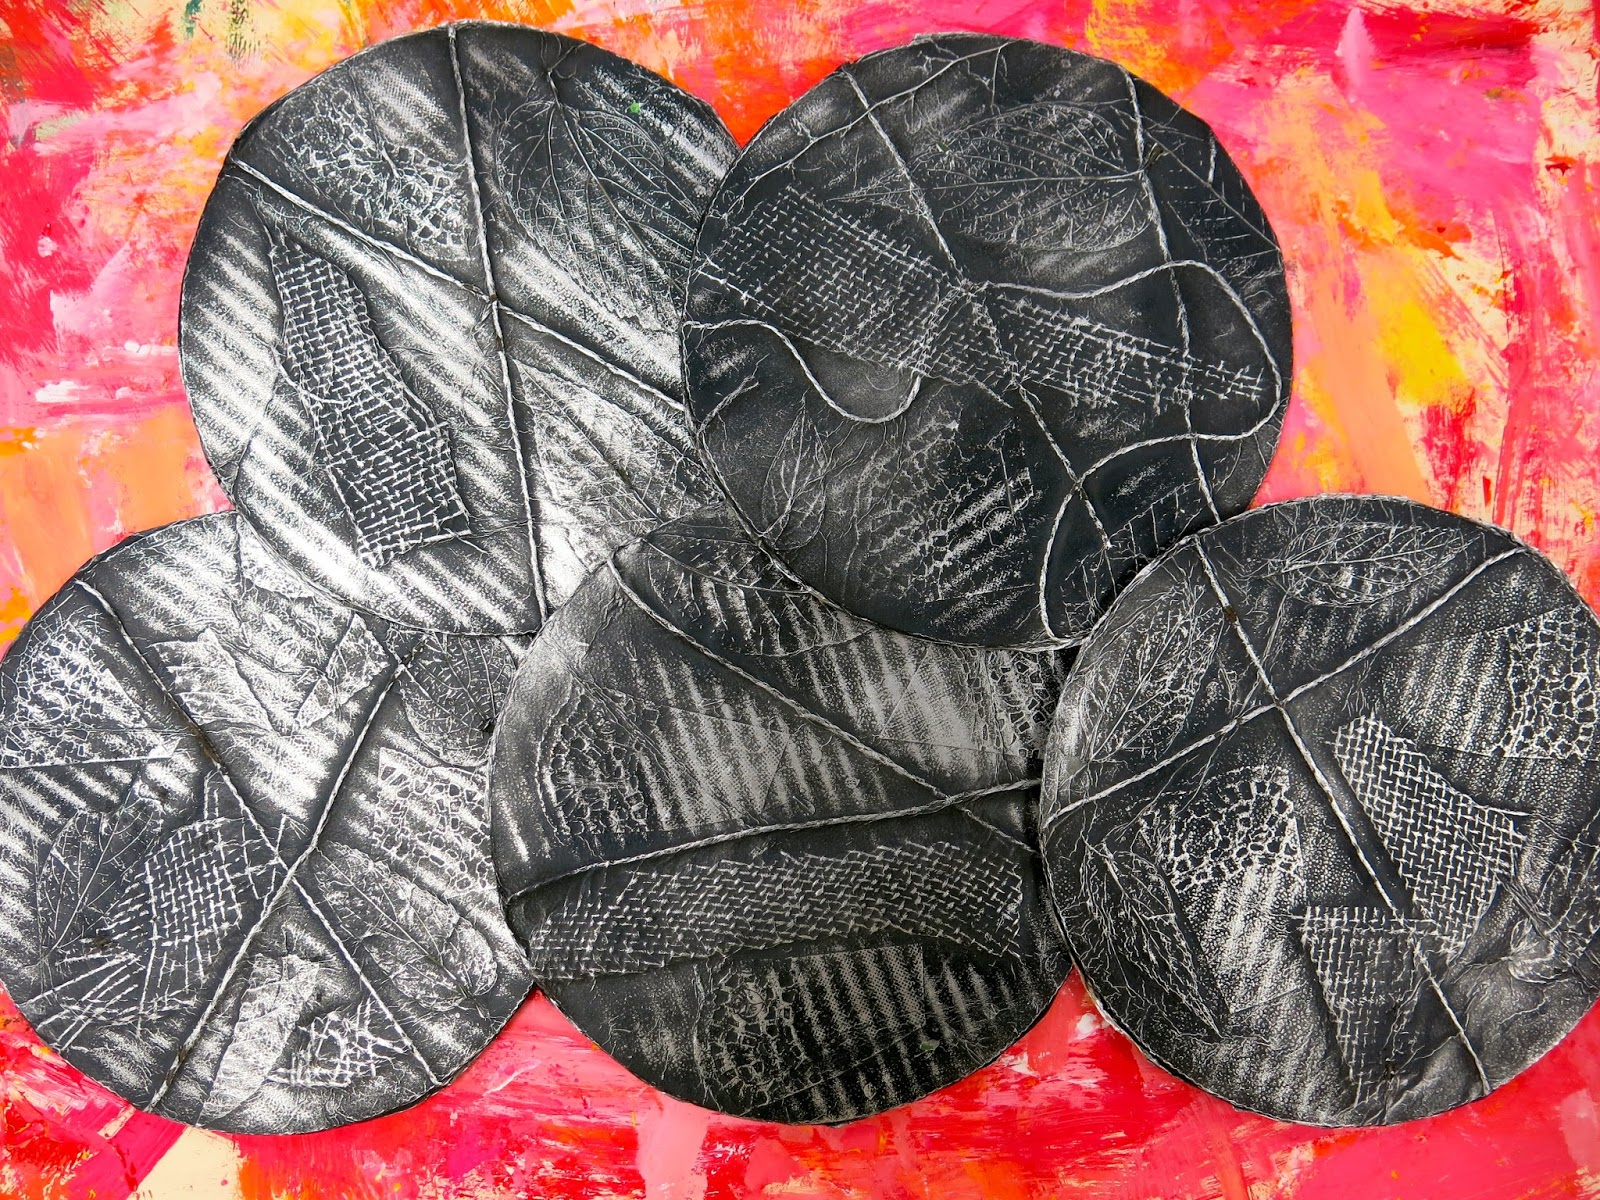 Cassie Stephens In The Art Room Texture Relief With